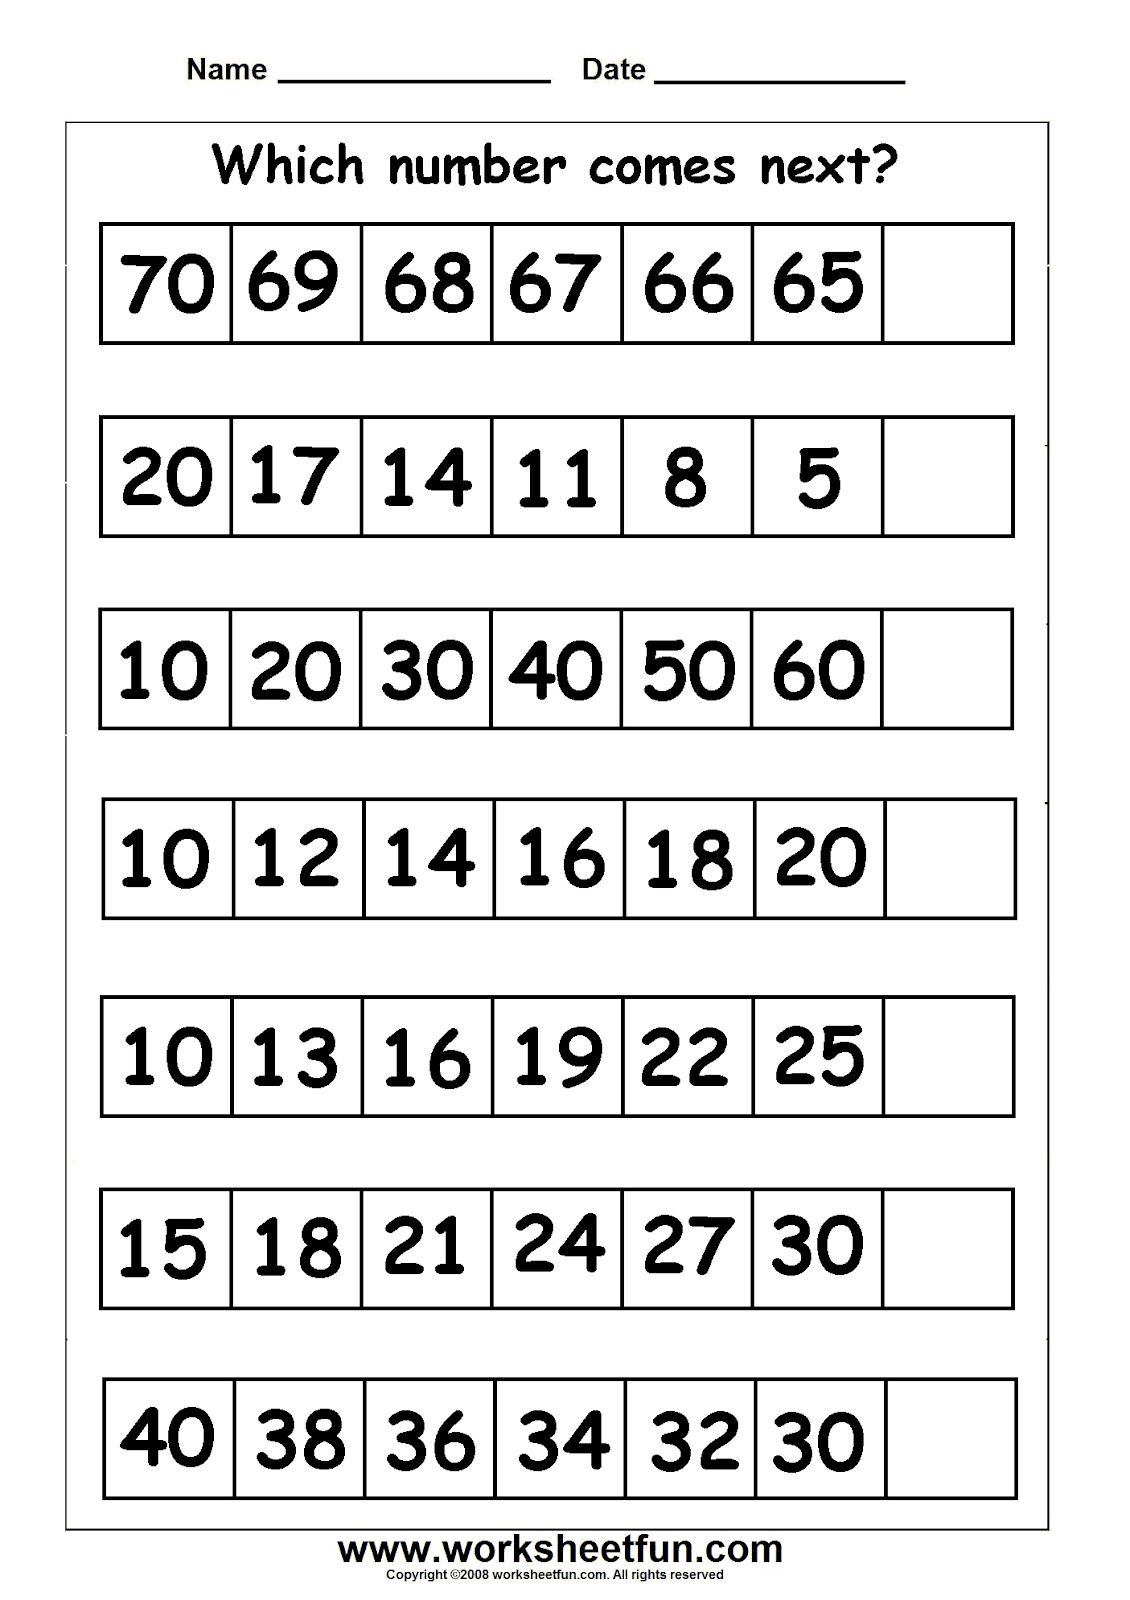 715 Counting number of jumps 721 Sequencing numerals 71371 – 1st Grade Math Worksheets Pdf